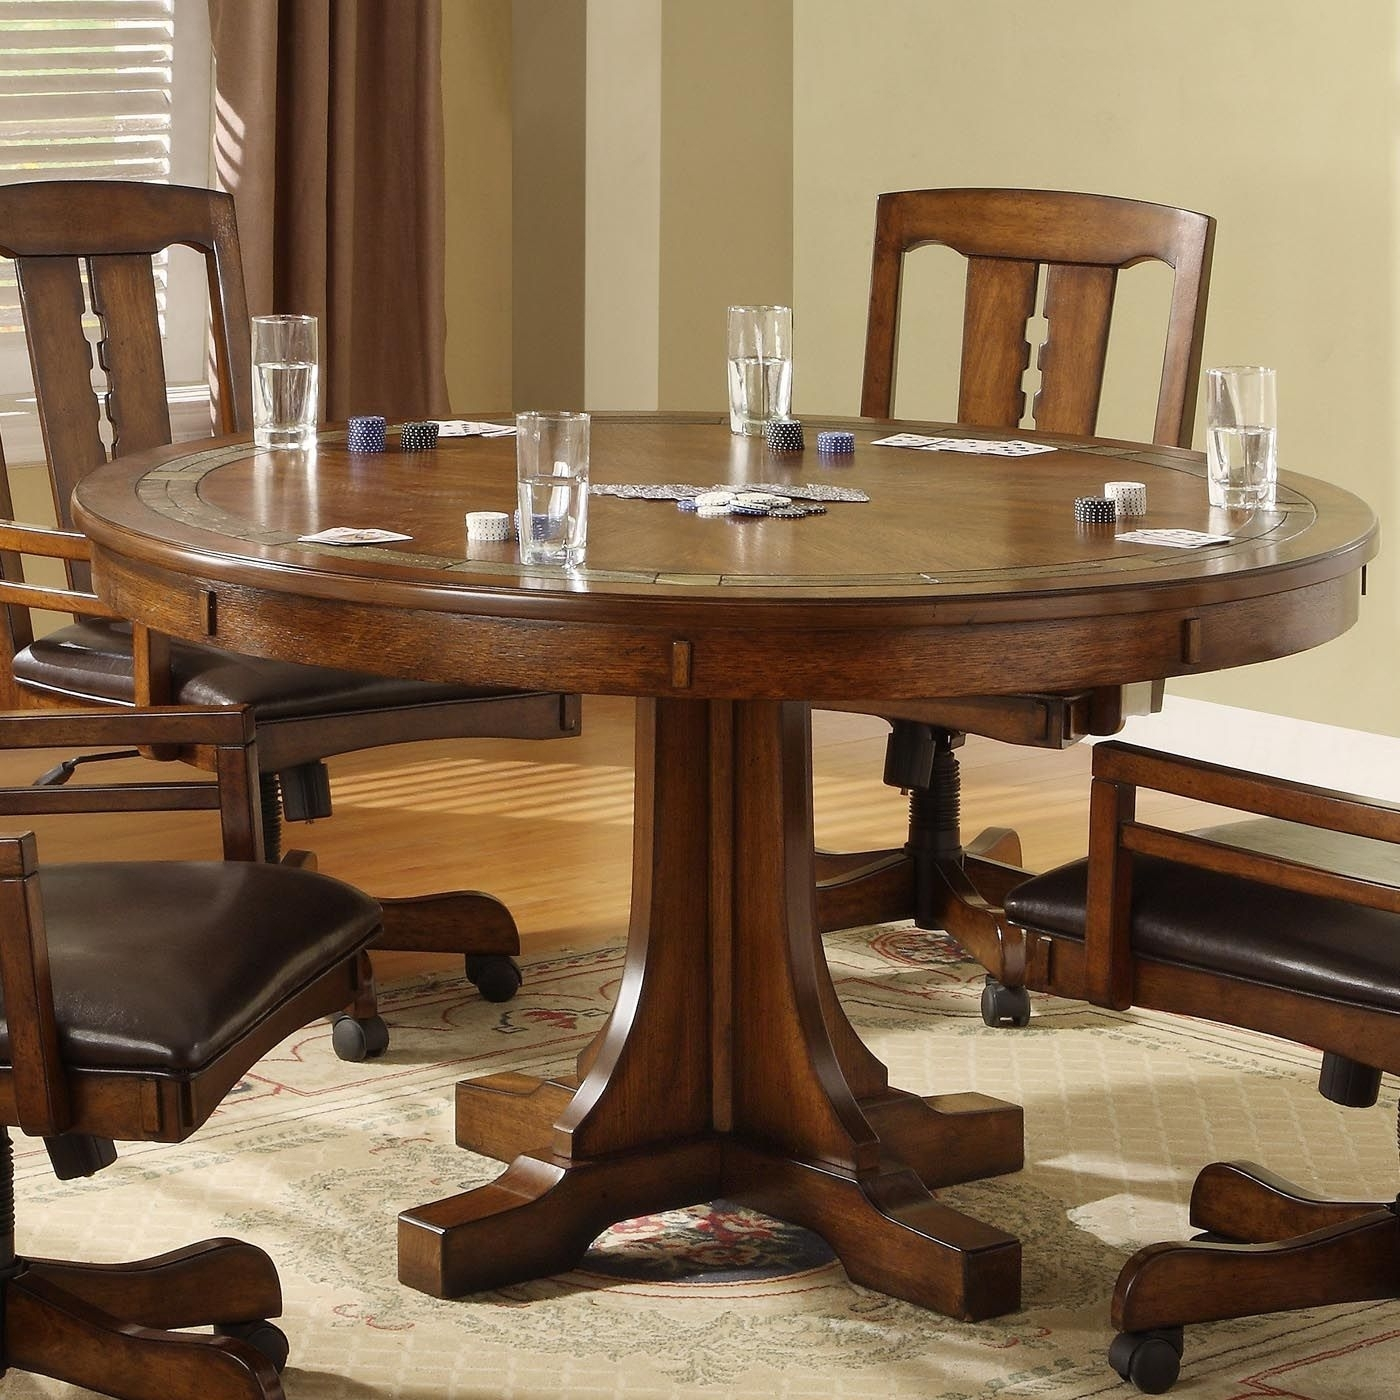 Craftsman Furniture | Riverside Furniture 295 Craftsman Home Convert Within Current Craftsman Rectangle Extension Dining Tables (Image 11 of 20)